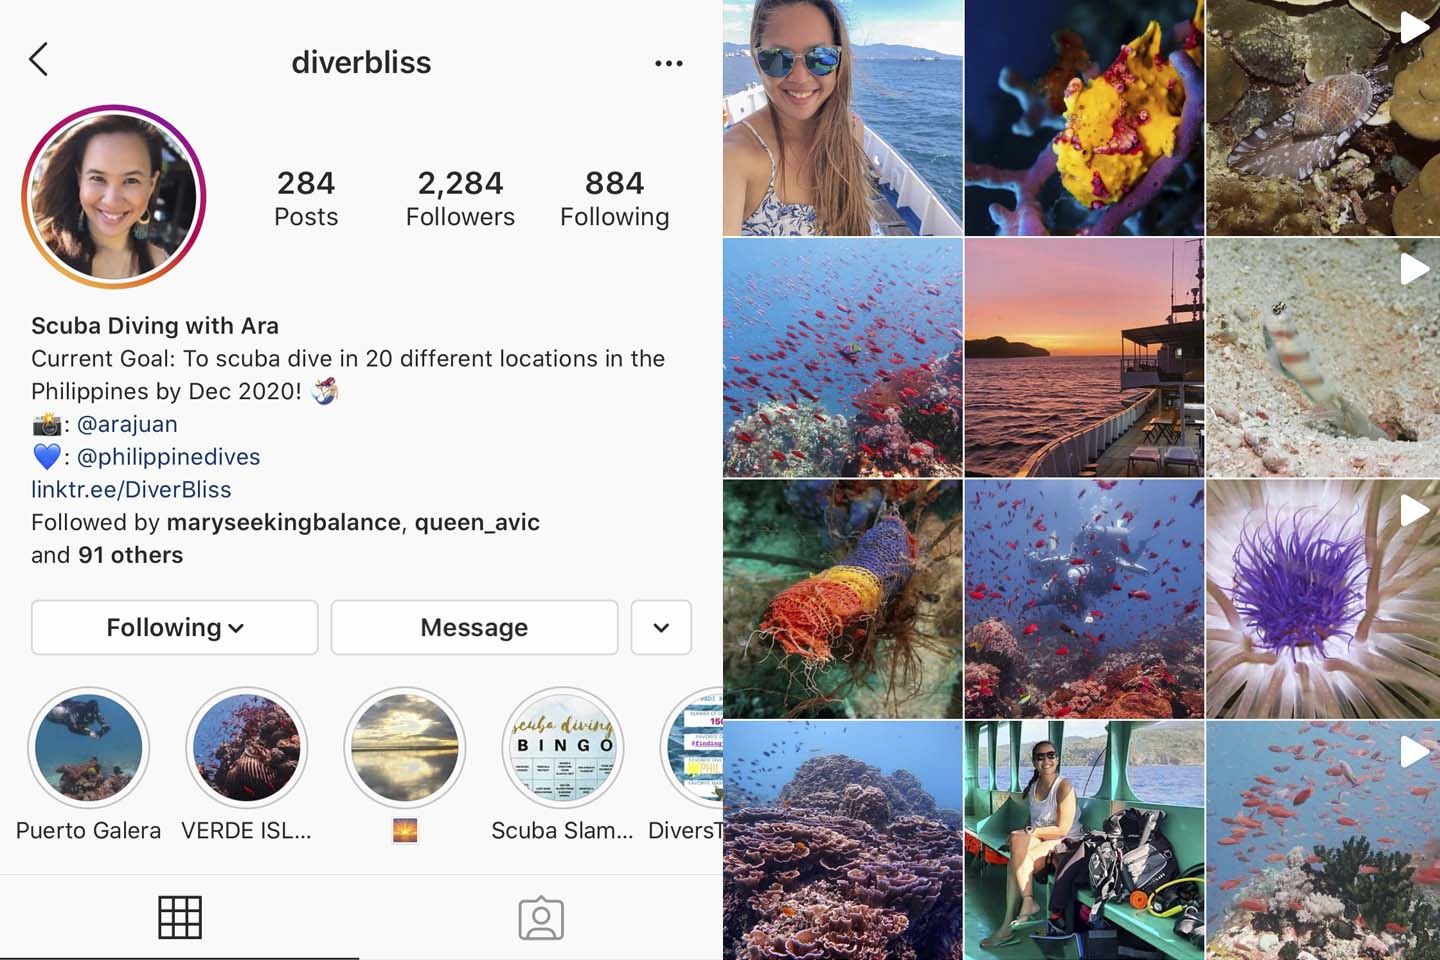 @diverbliss diving instagram account focuses on sustainable travels, scuba diving and marine conservation